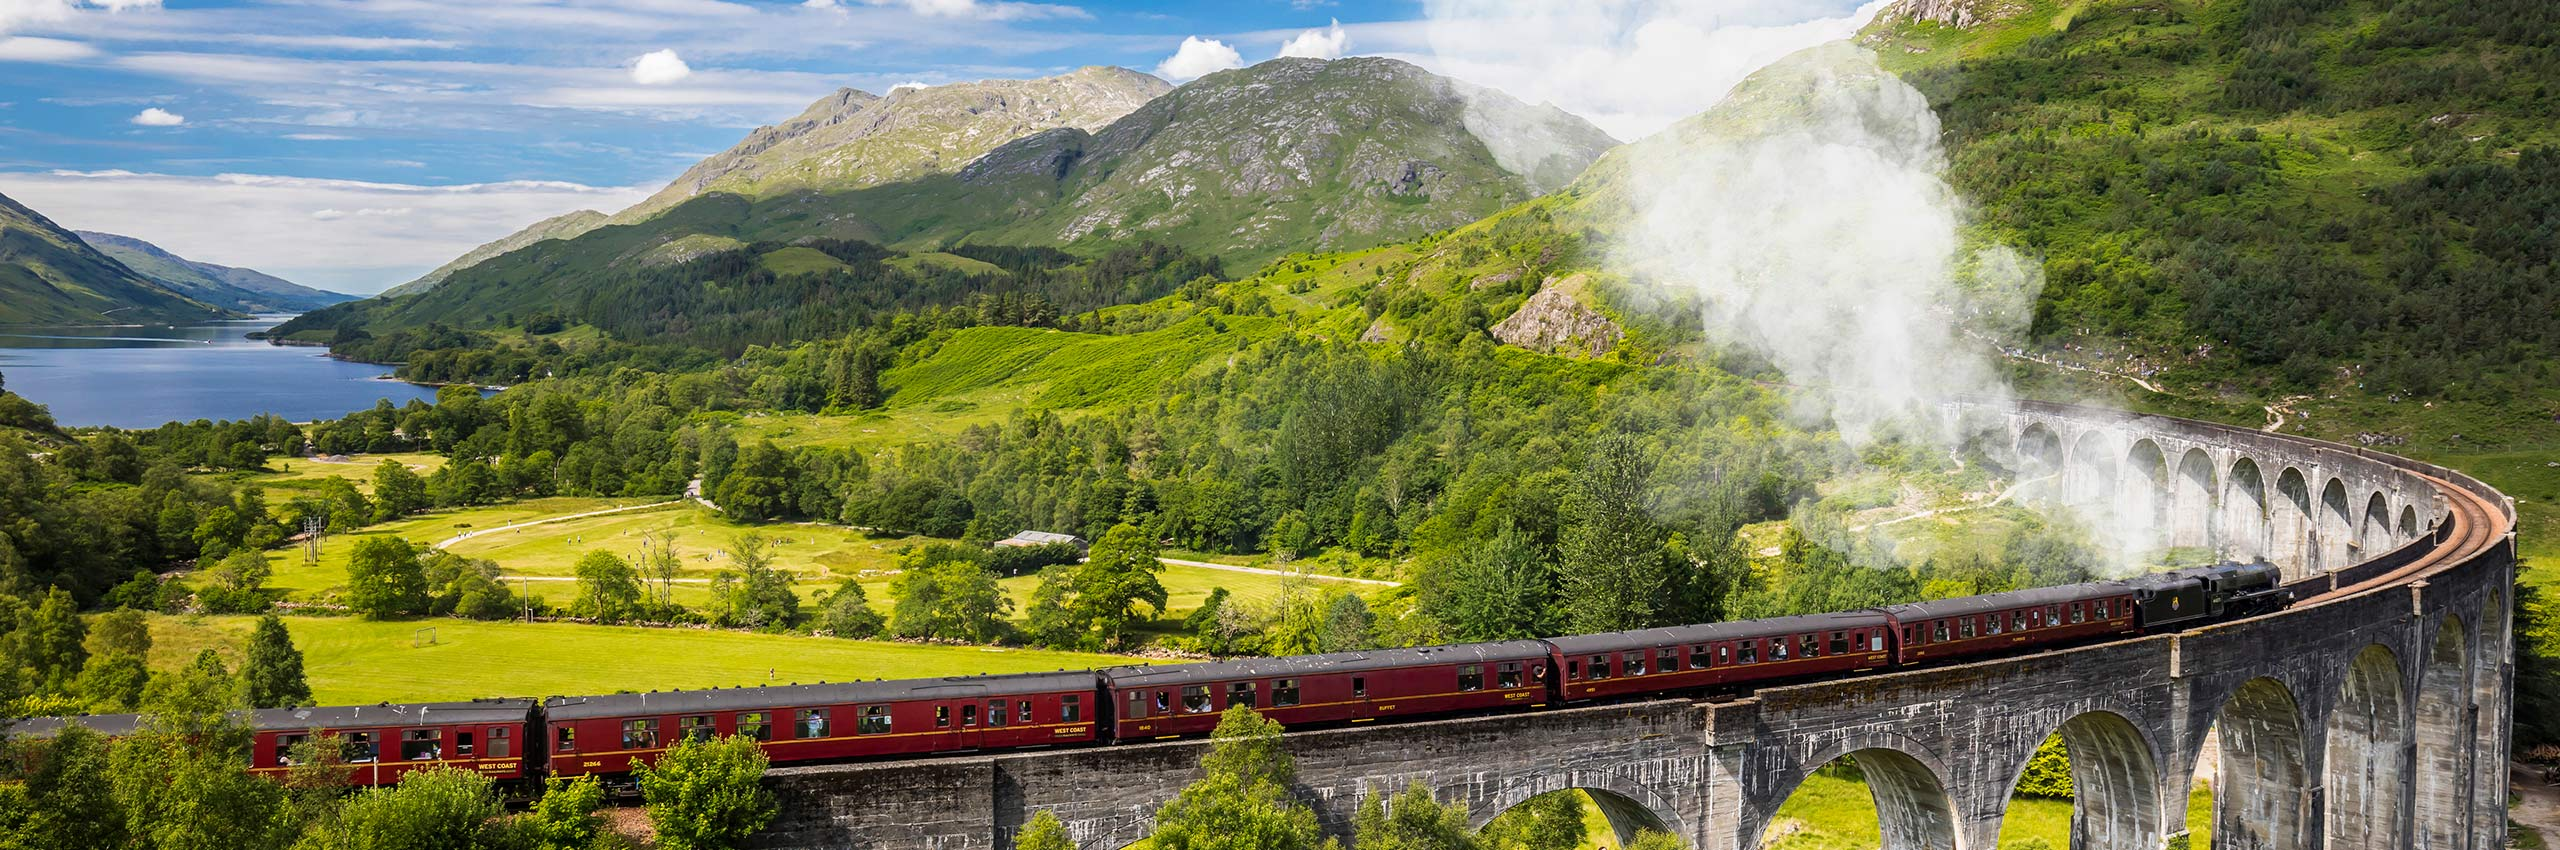 FCR-505814 | UK/Scotland, Highland, Glenfinnan | © Maurizio Rellini/4Corners